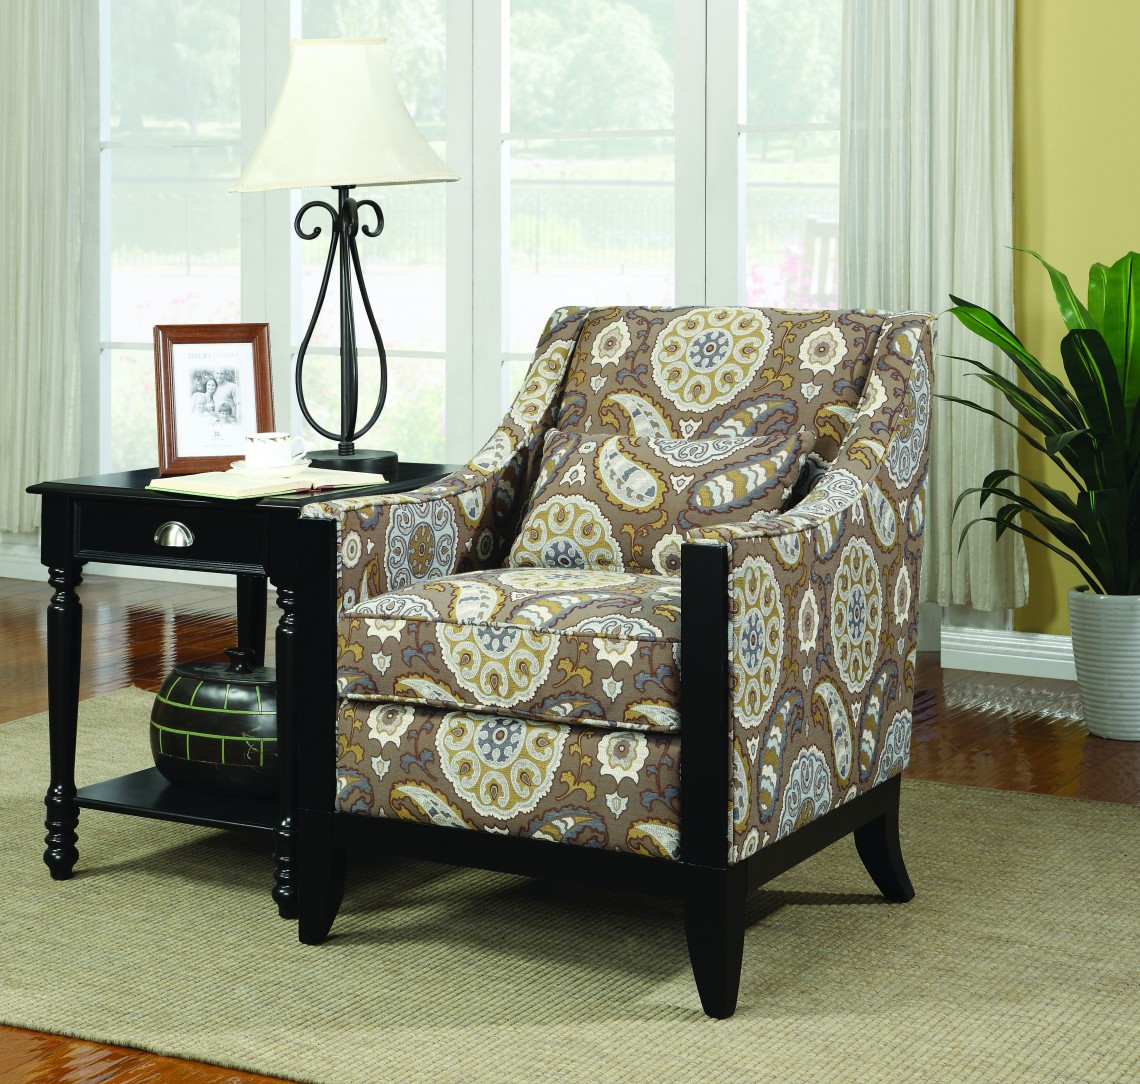 Furniture rentals near me furniture rental near me 28 for Home furniture near me